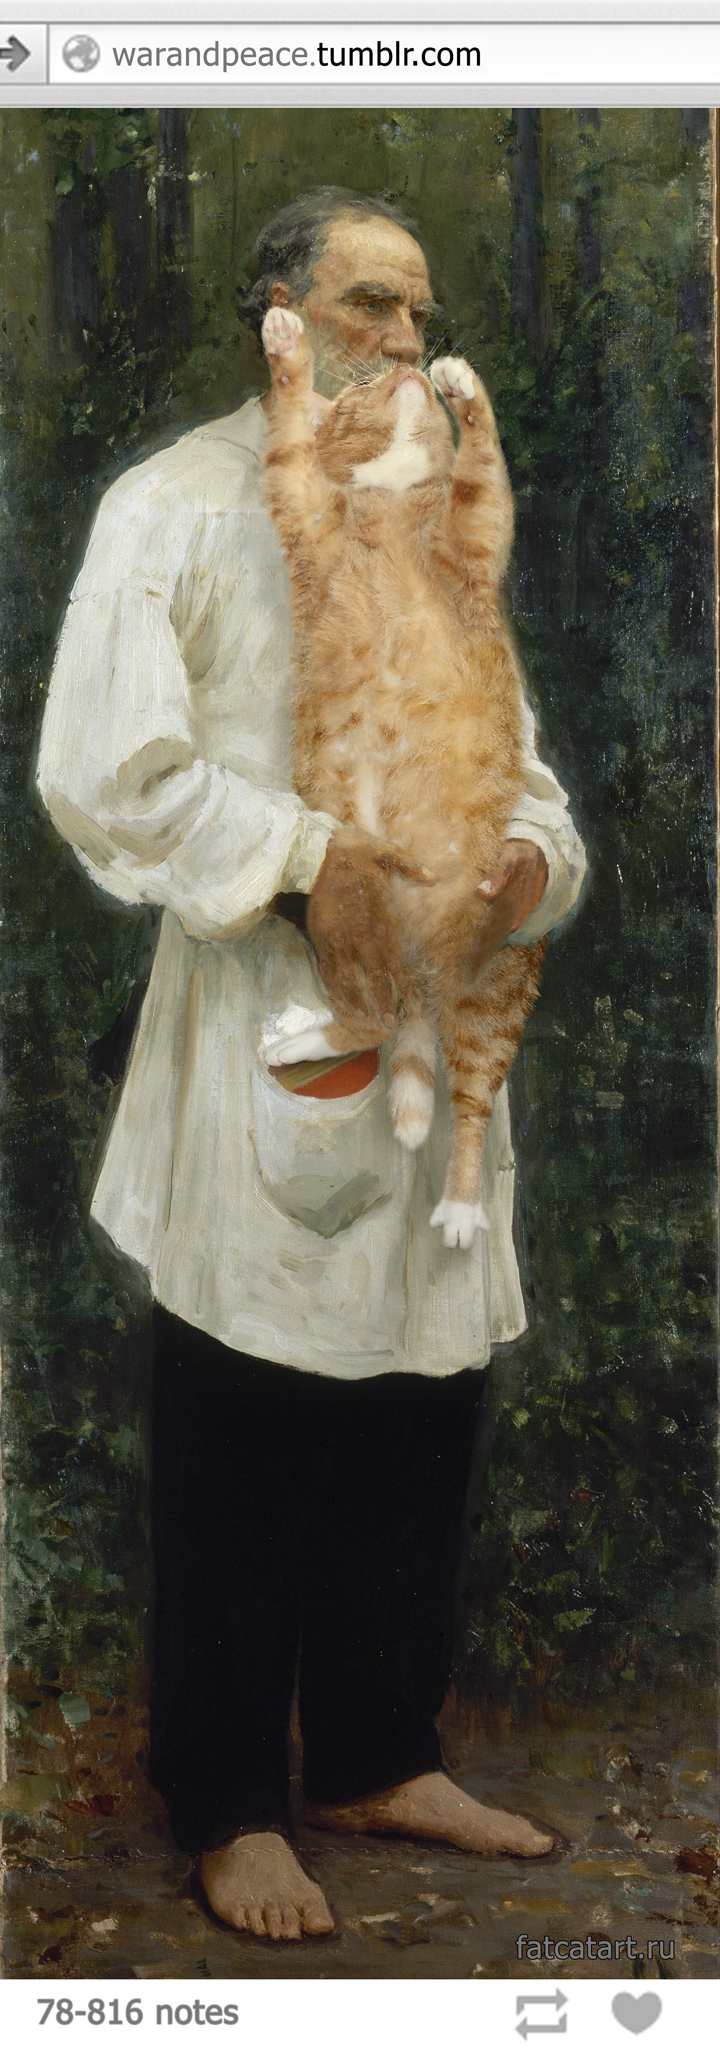 Ilya Repin, Leo Tolstoy with the cat beard, barefoot.